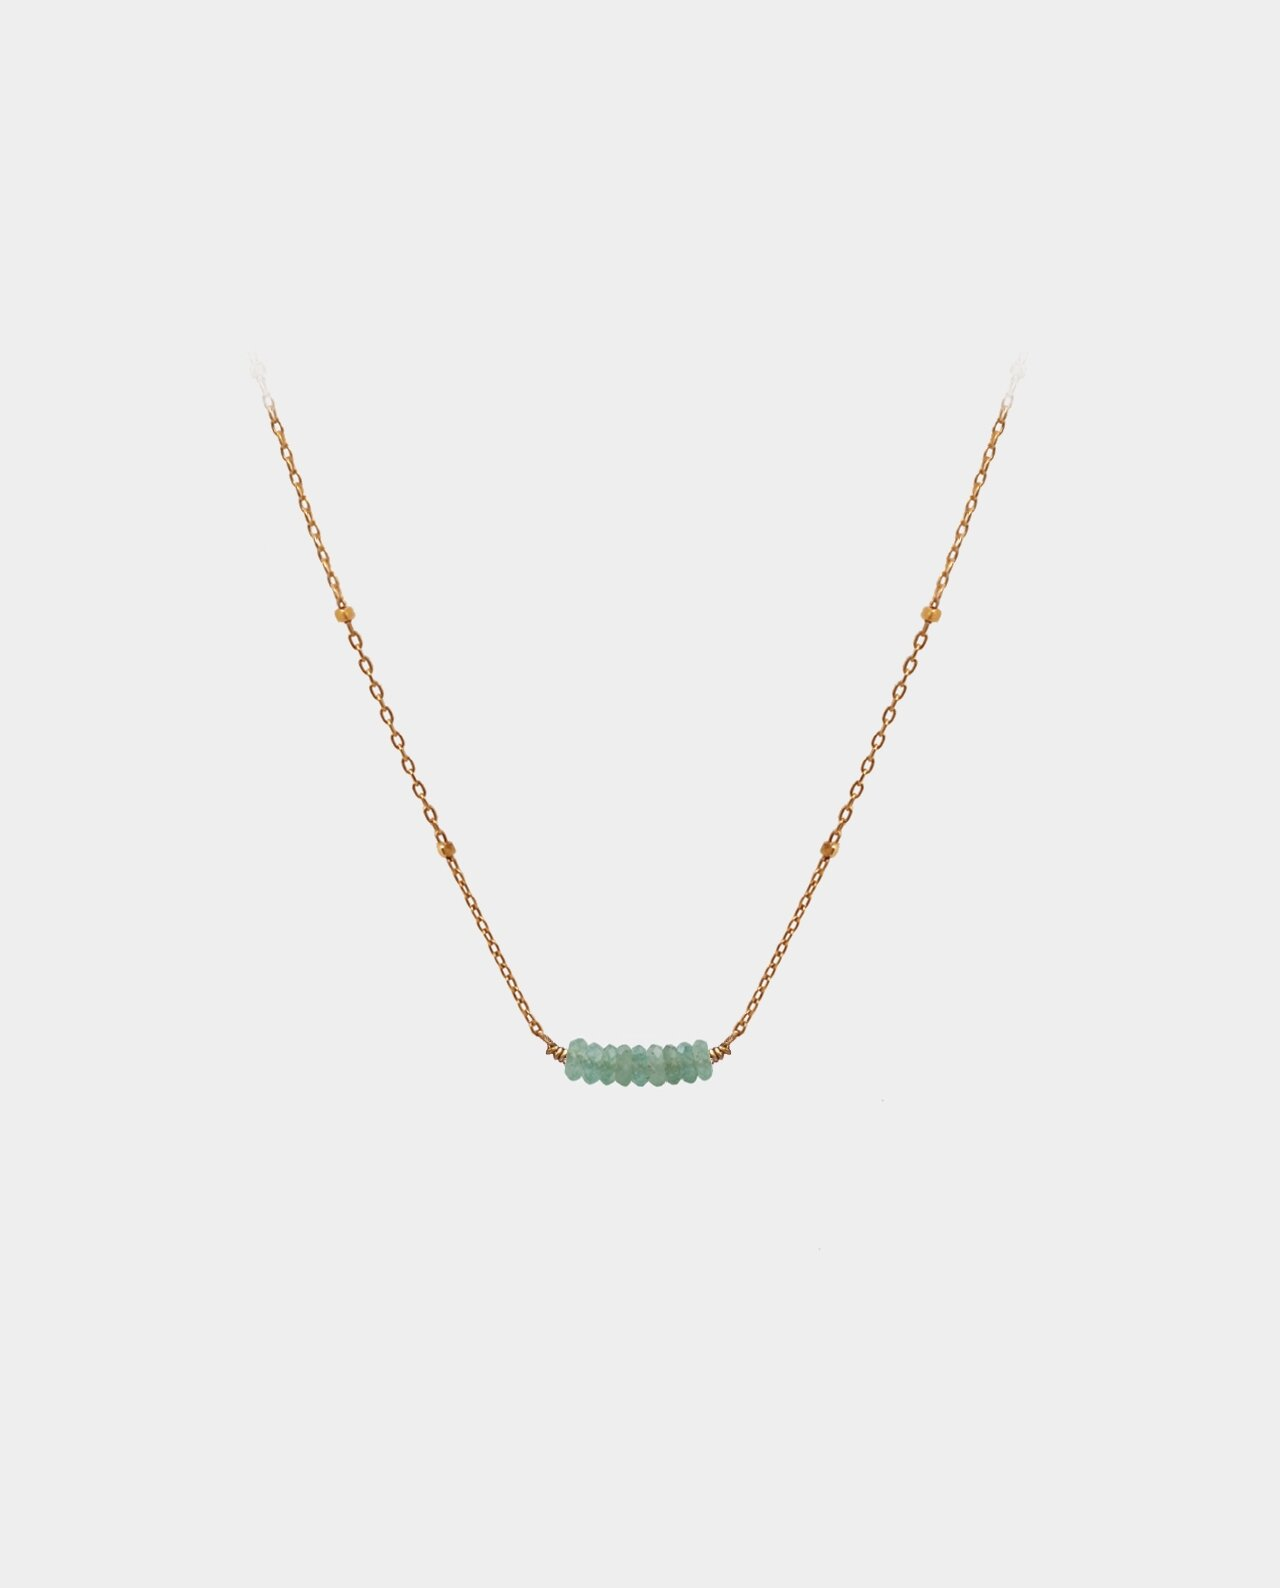 Necklace with bright aventurines in a simple design that gives the popular piece jewelry a beautiful radiance that sparkles